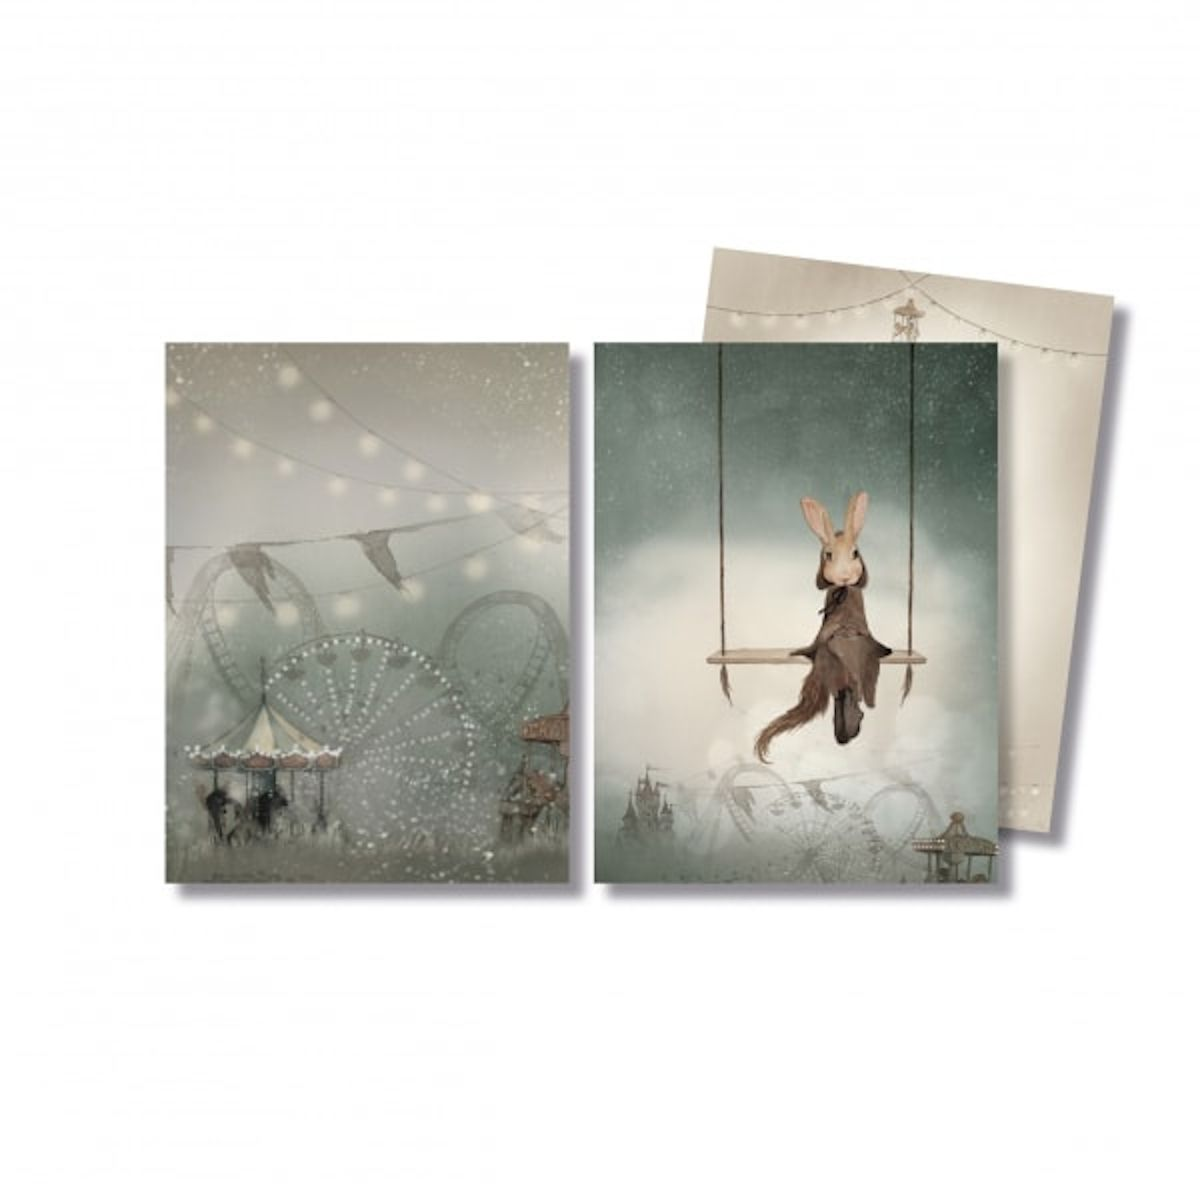 Mme. Mighetto - Lot de A6 Tivoli & Swing Cards - 1